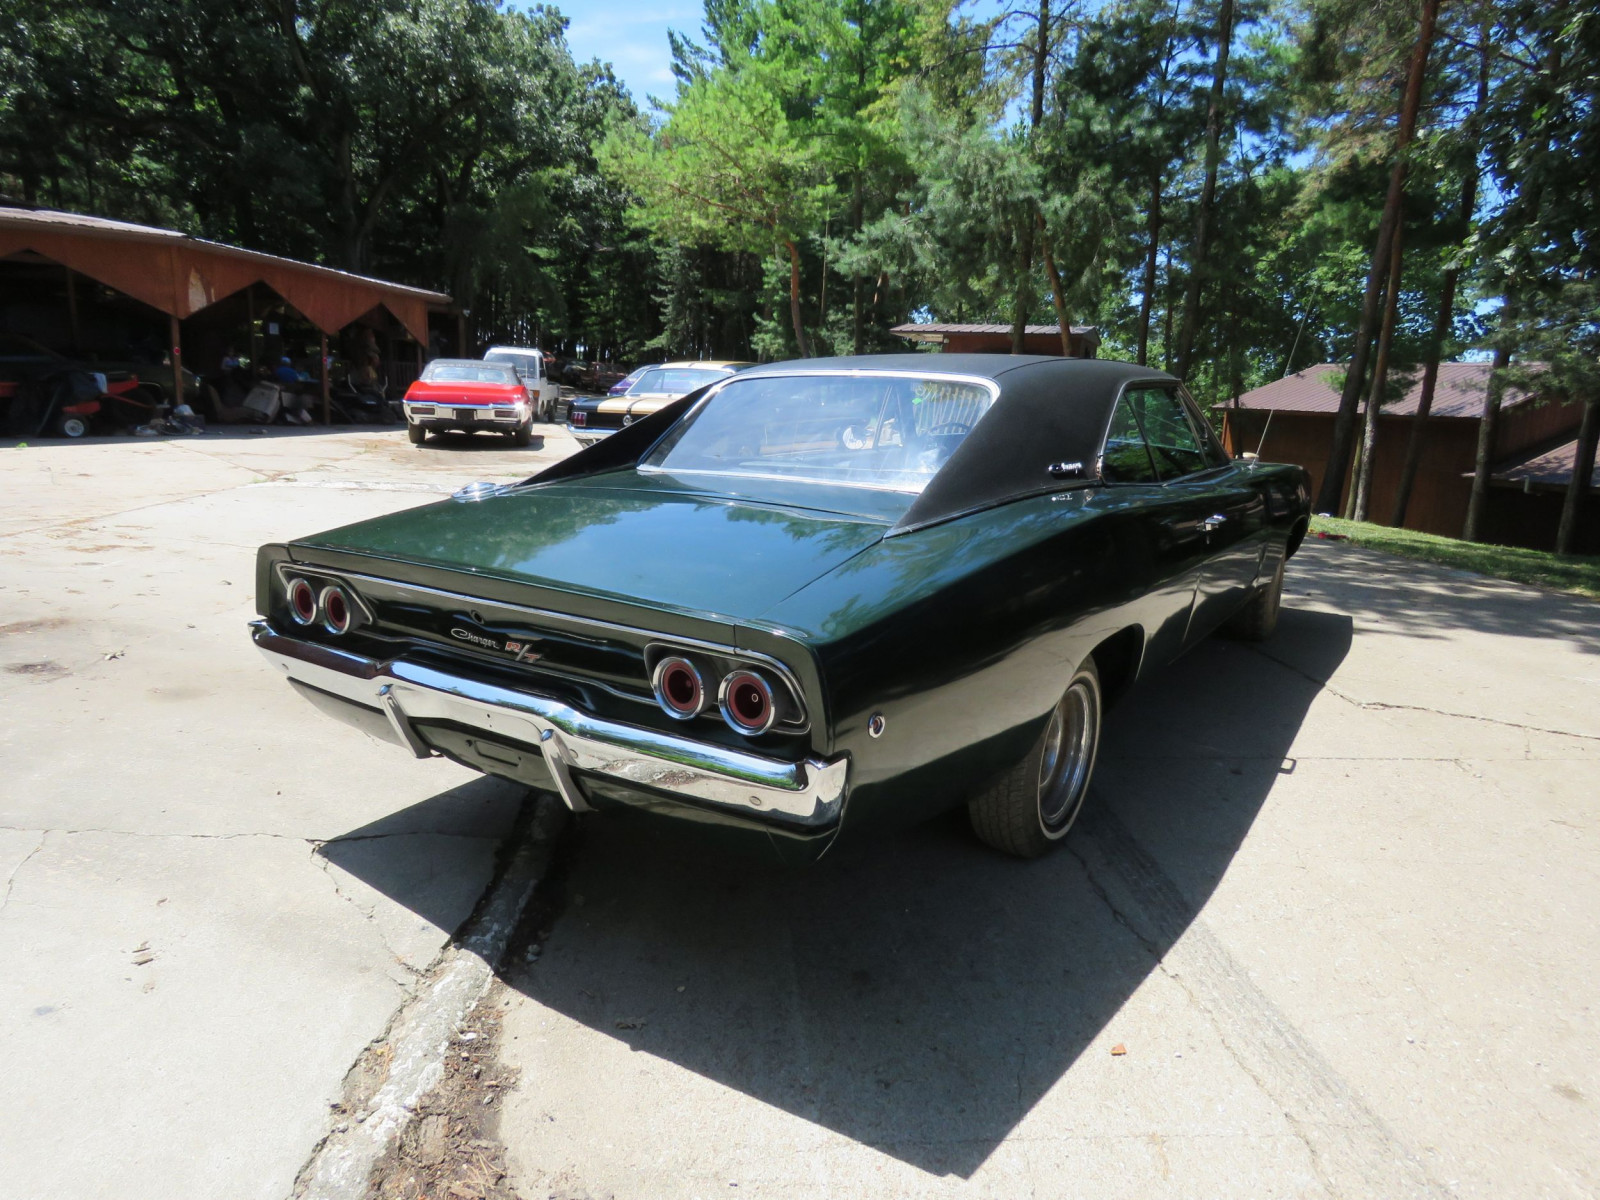 1968 Dodge Charger 2dr HT Coupe - Image 5